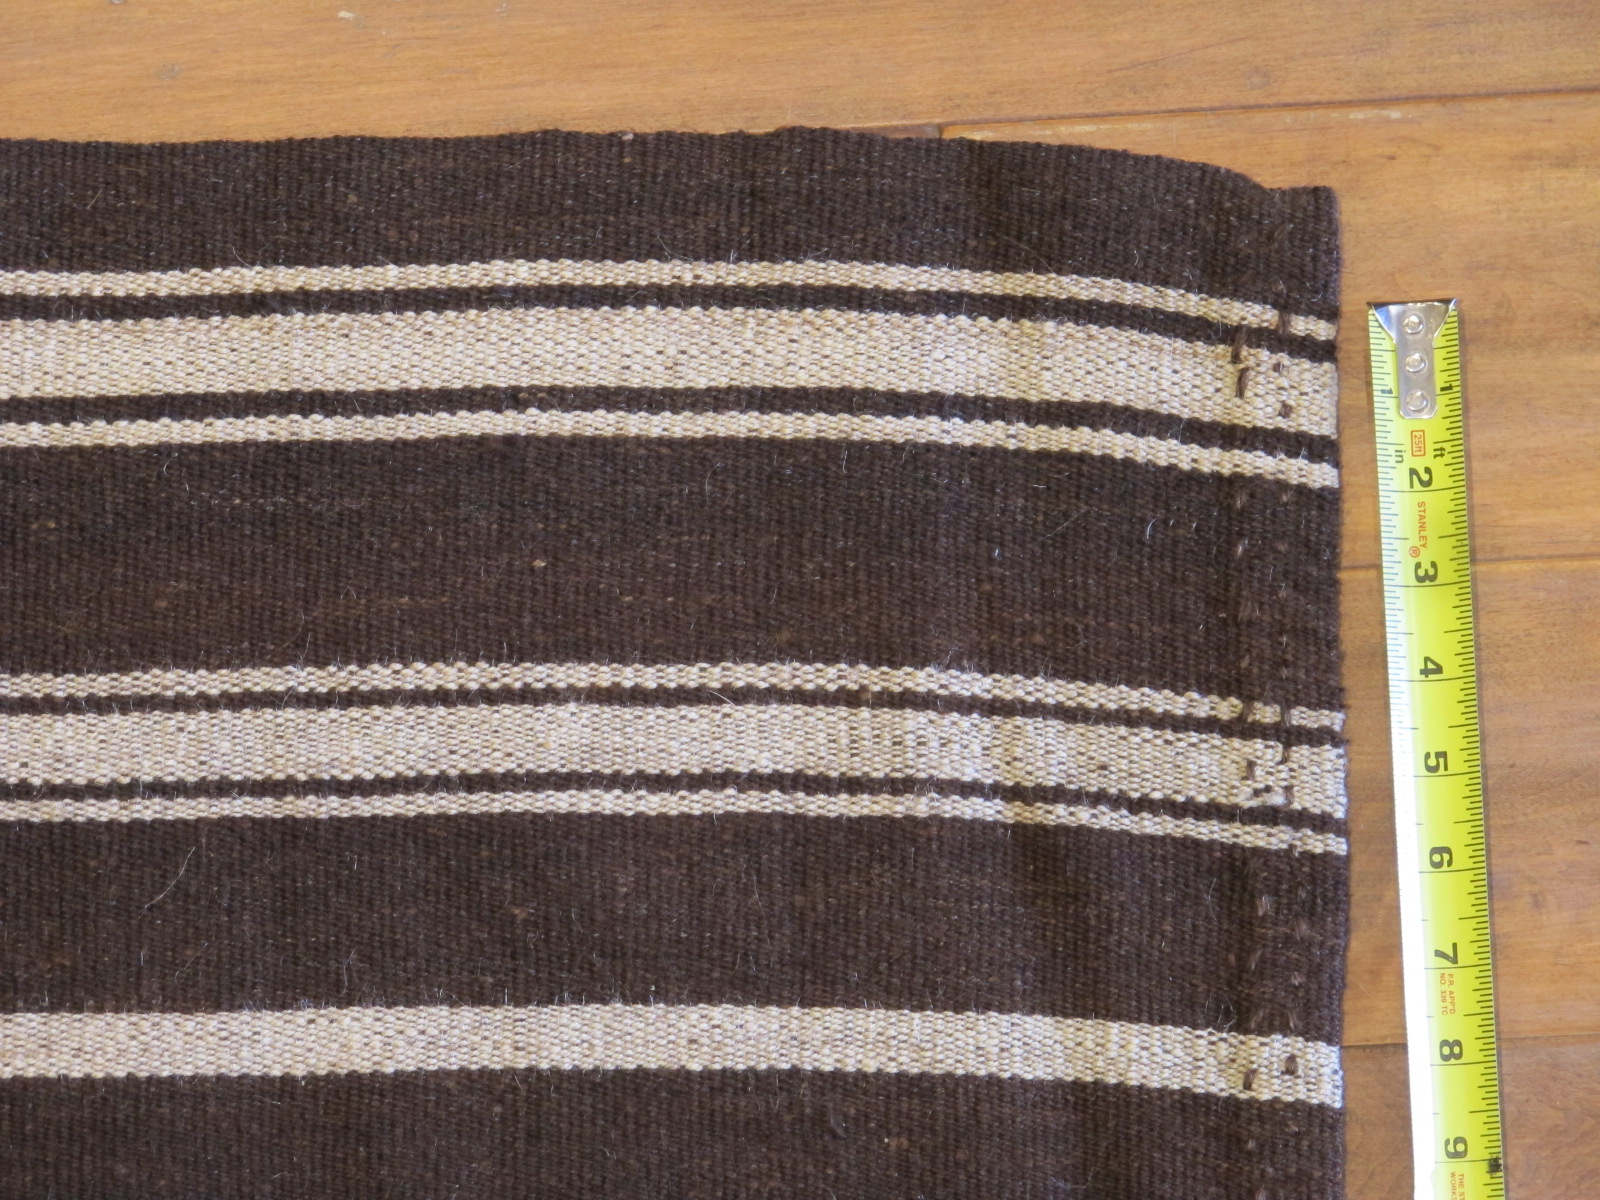 22058 persian flatweave tribal runner 3 x 9,3 (2)